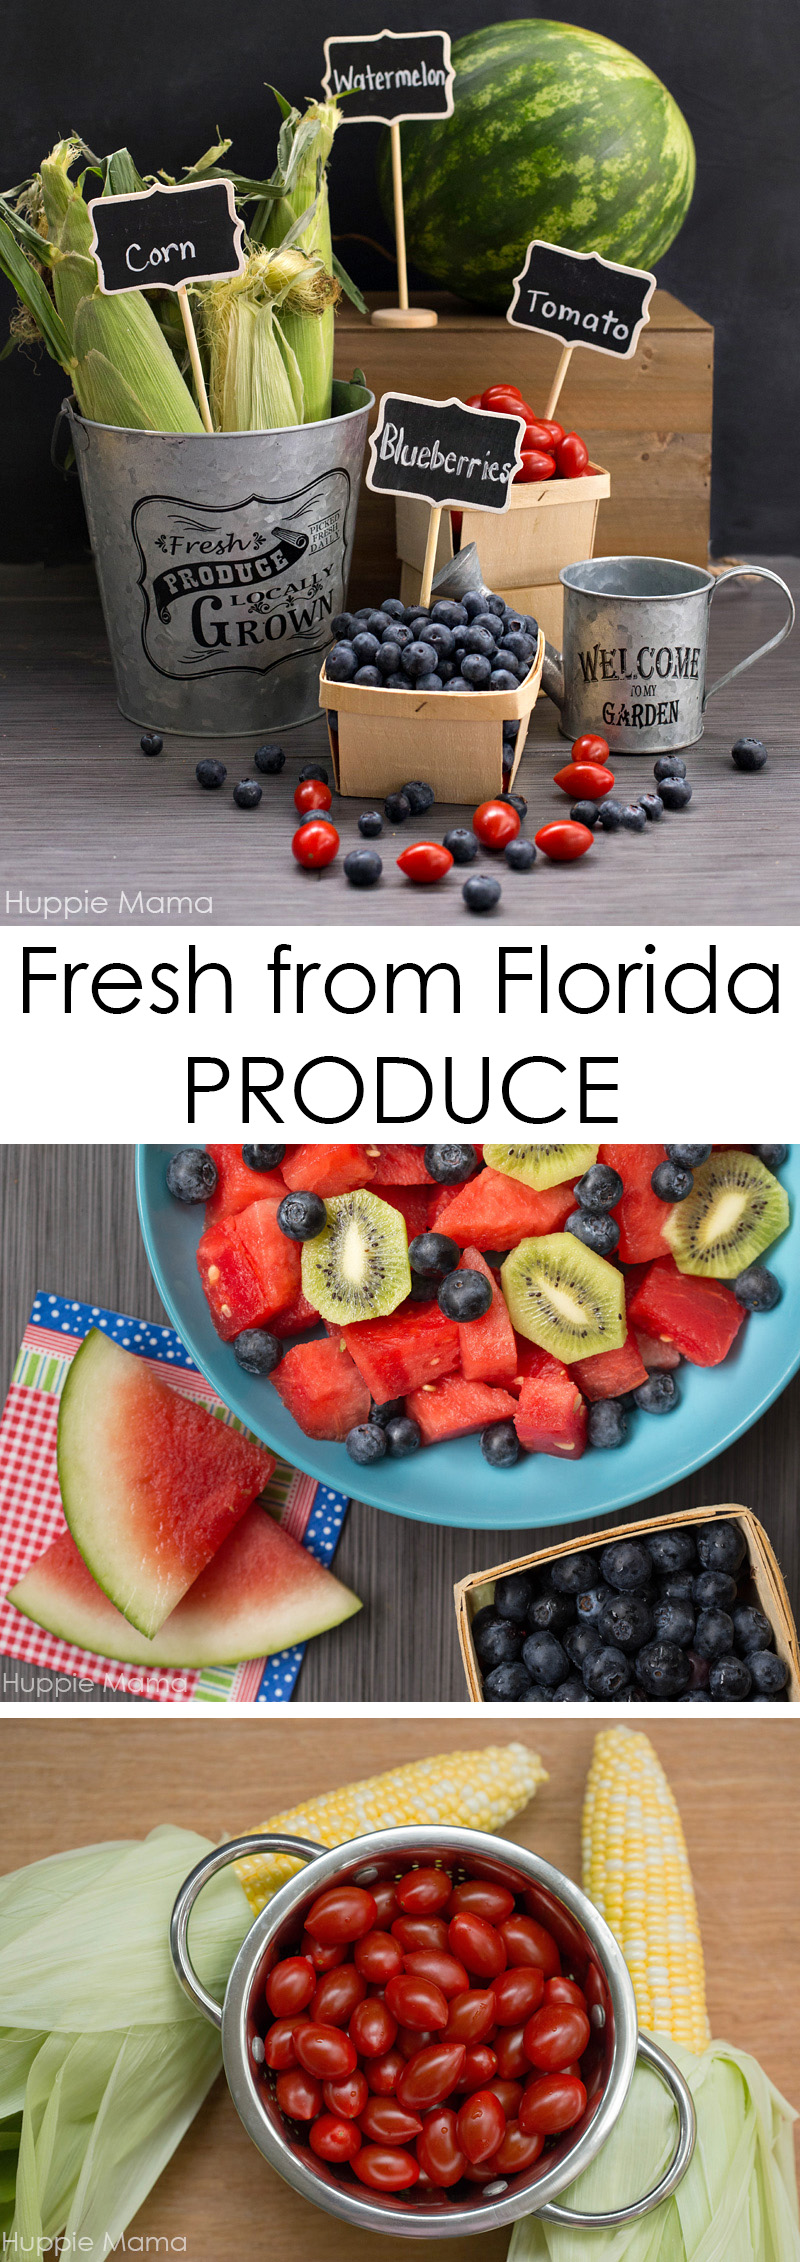 Fresh from Florida produce